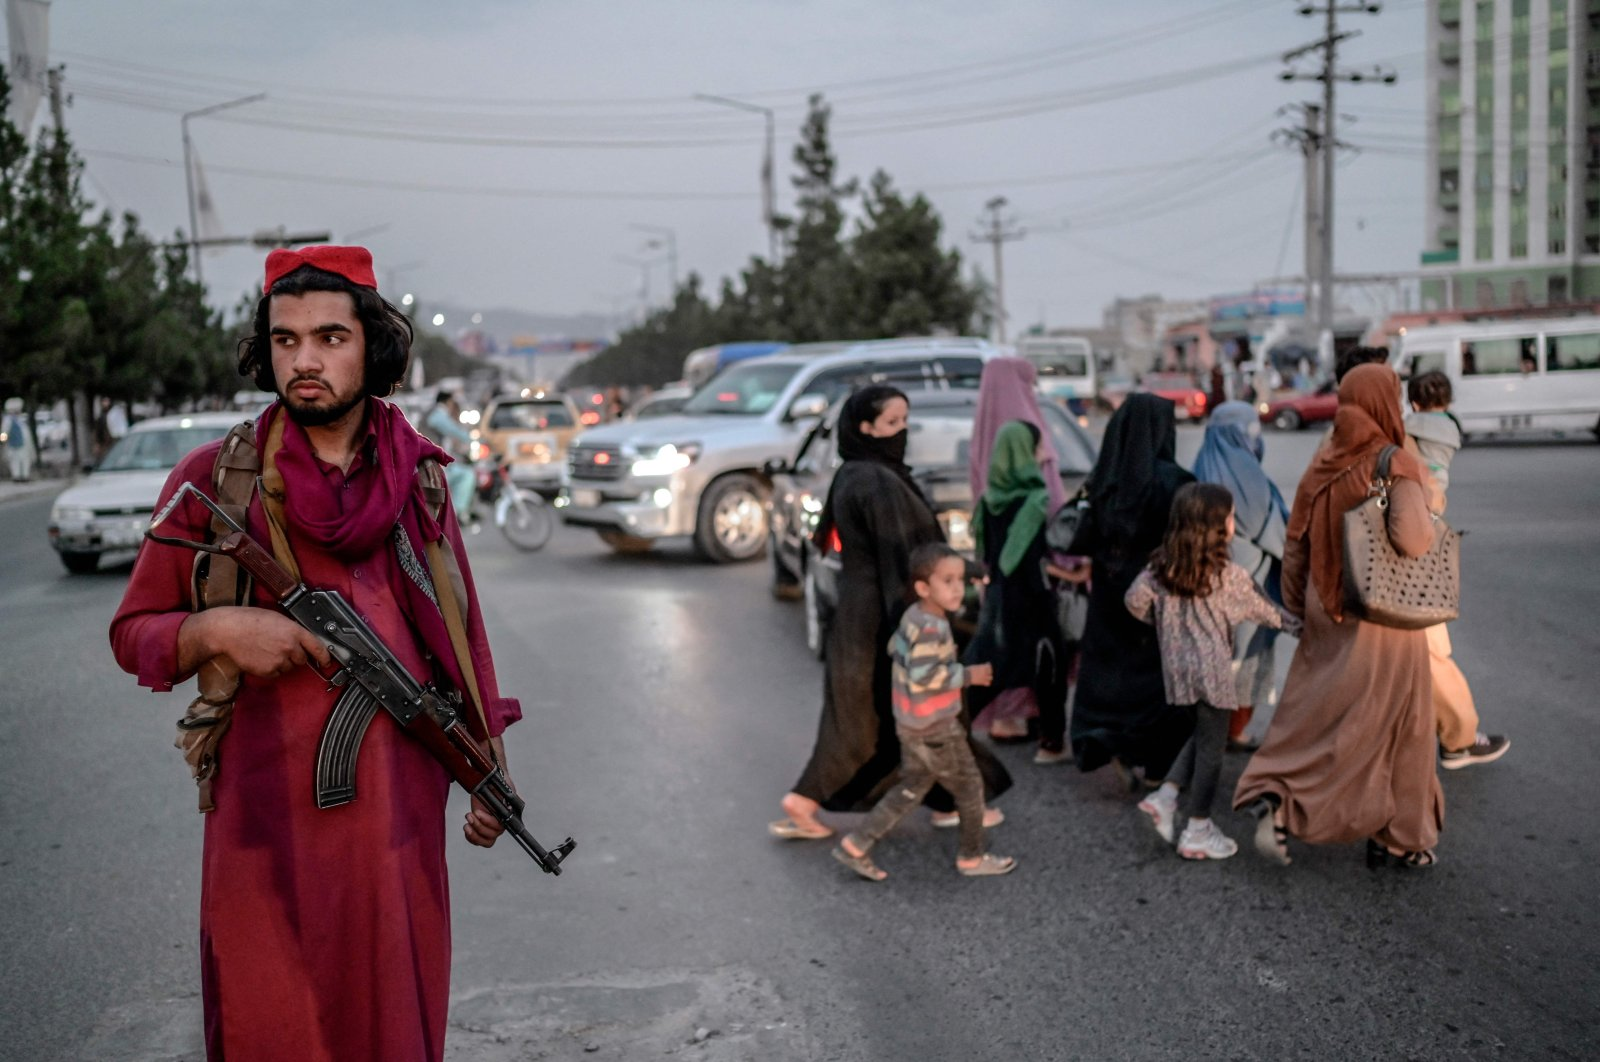 A member of the Taliban stands guard along a road in Kabul, Afghanistan, Sept. 30, 2021. (AFP Photo)